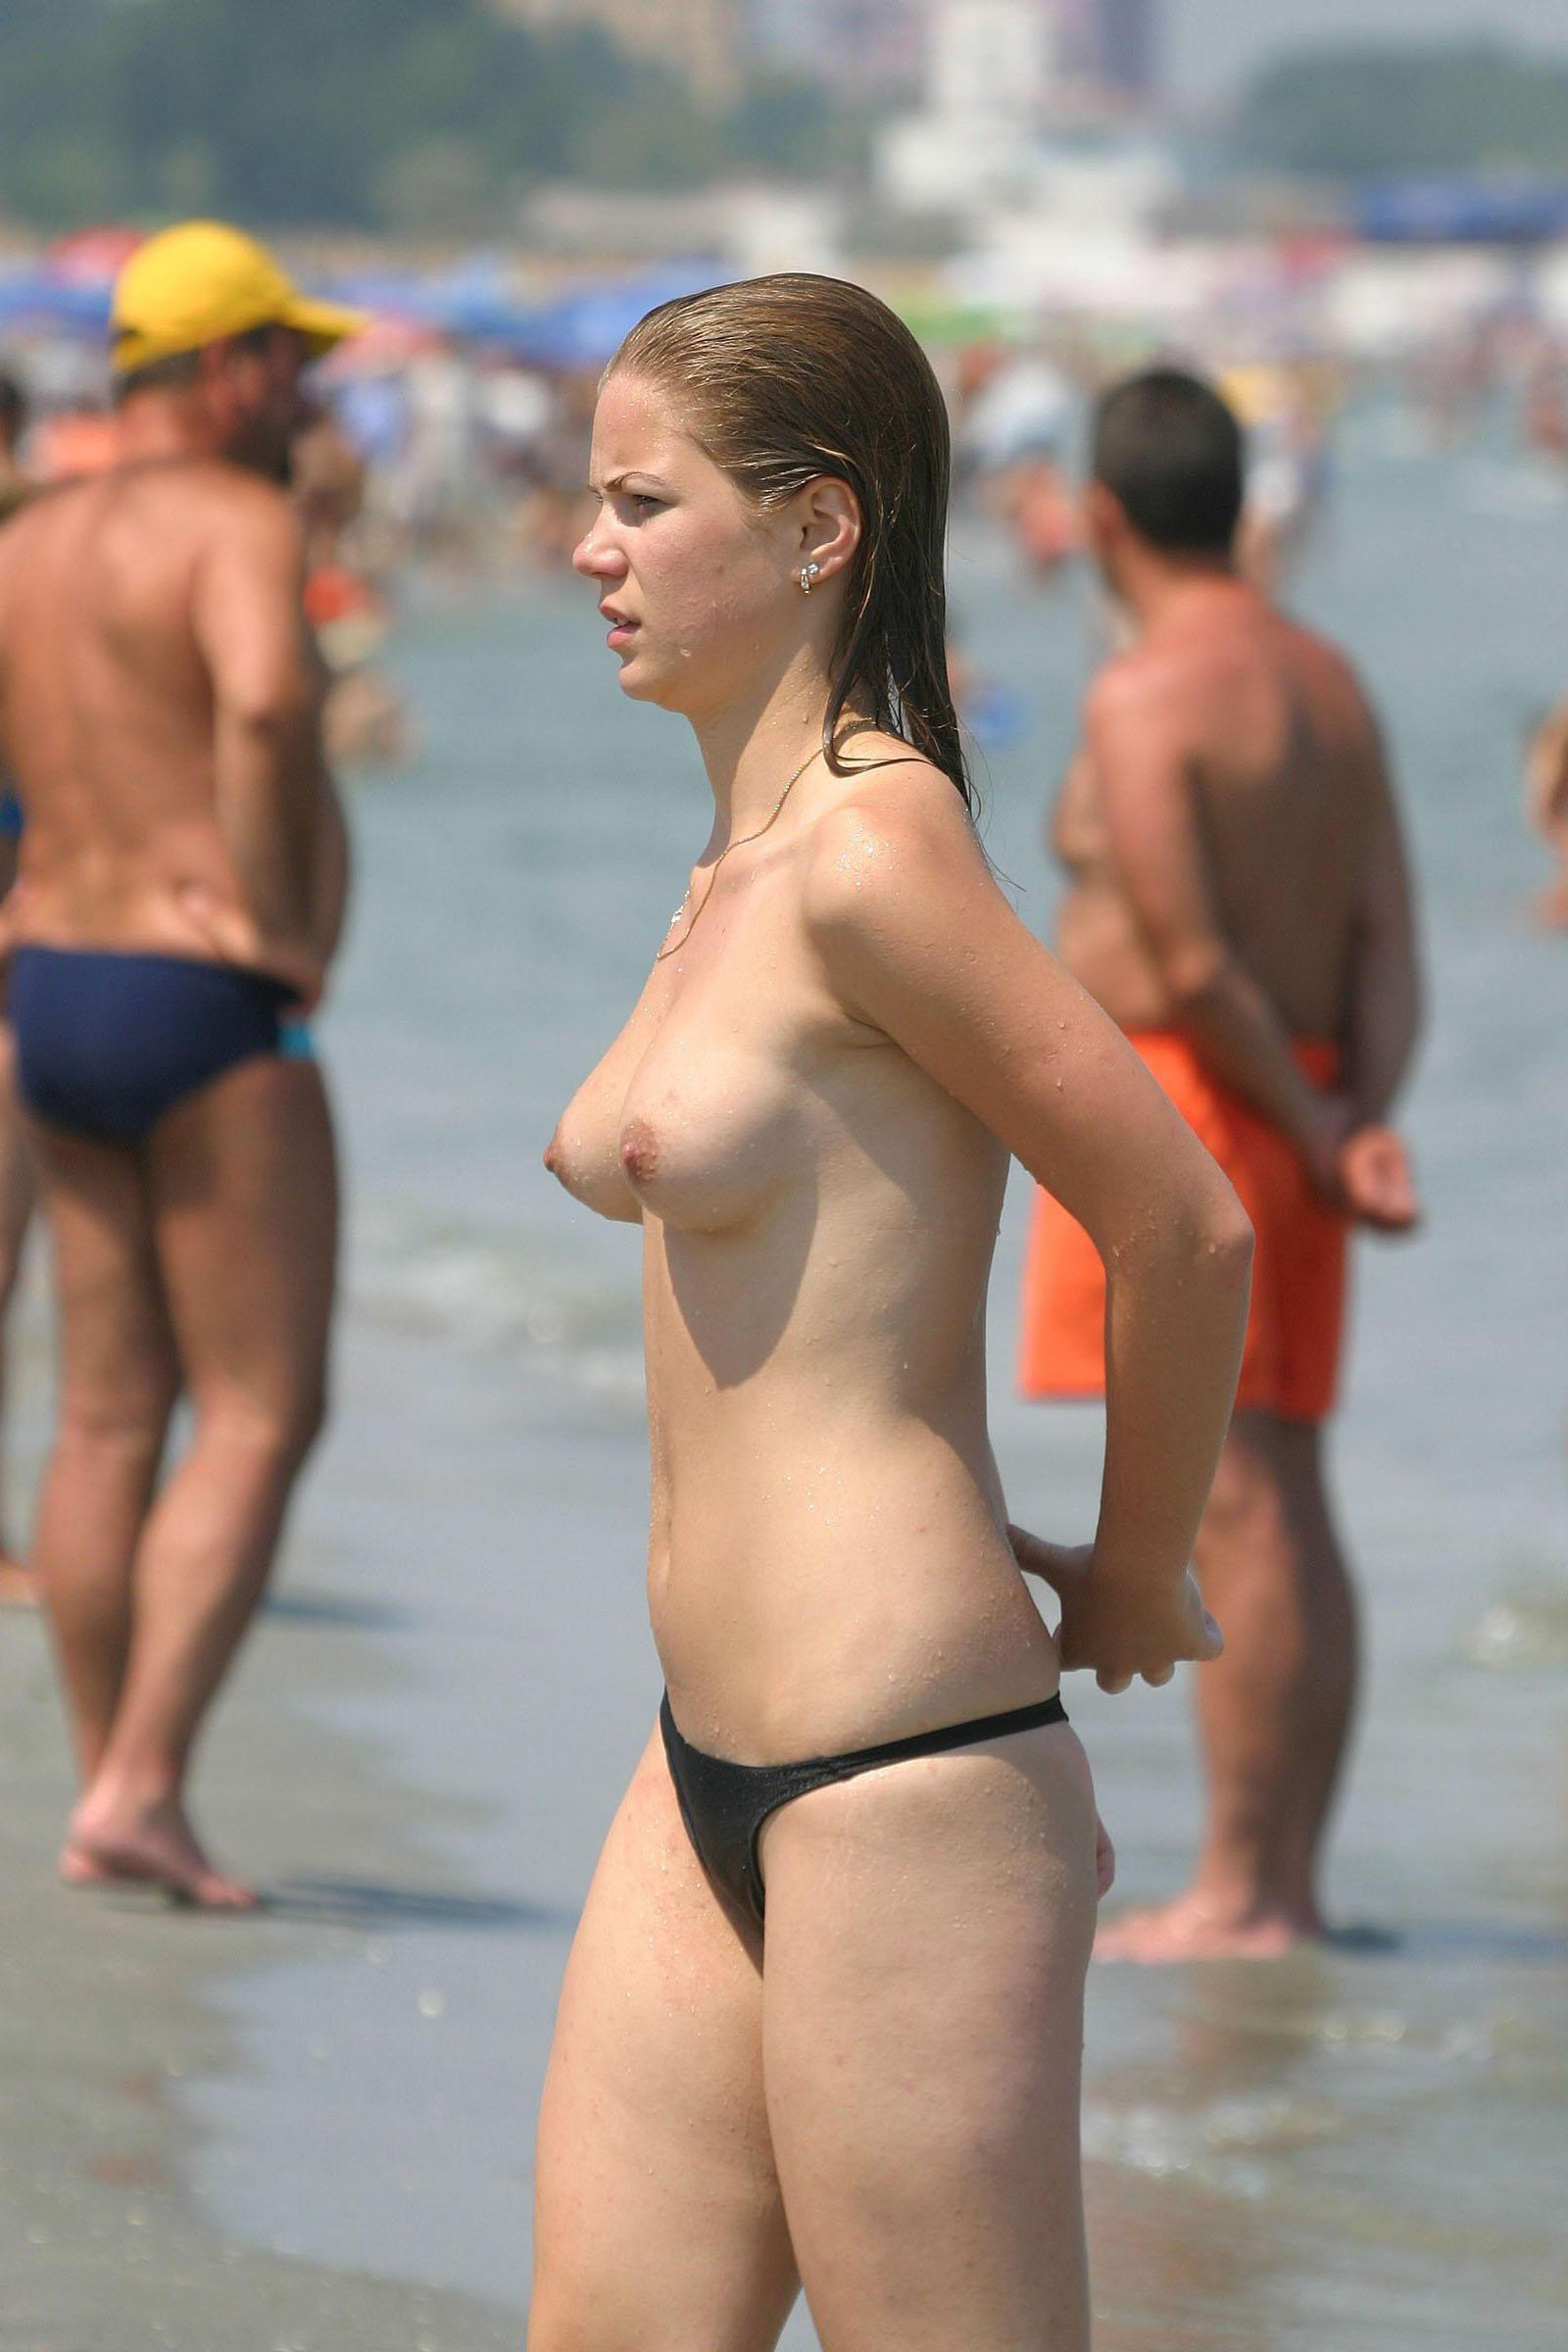 She looks pretty amazing with those pert titties